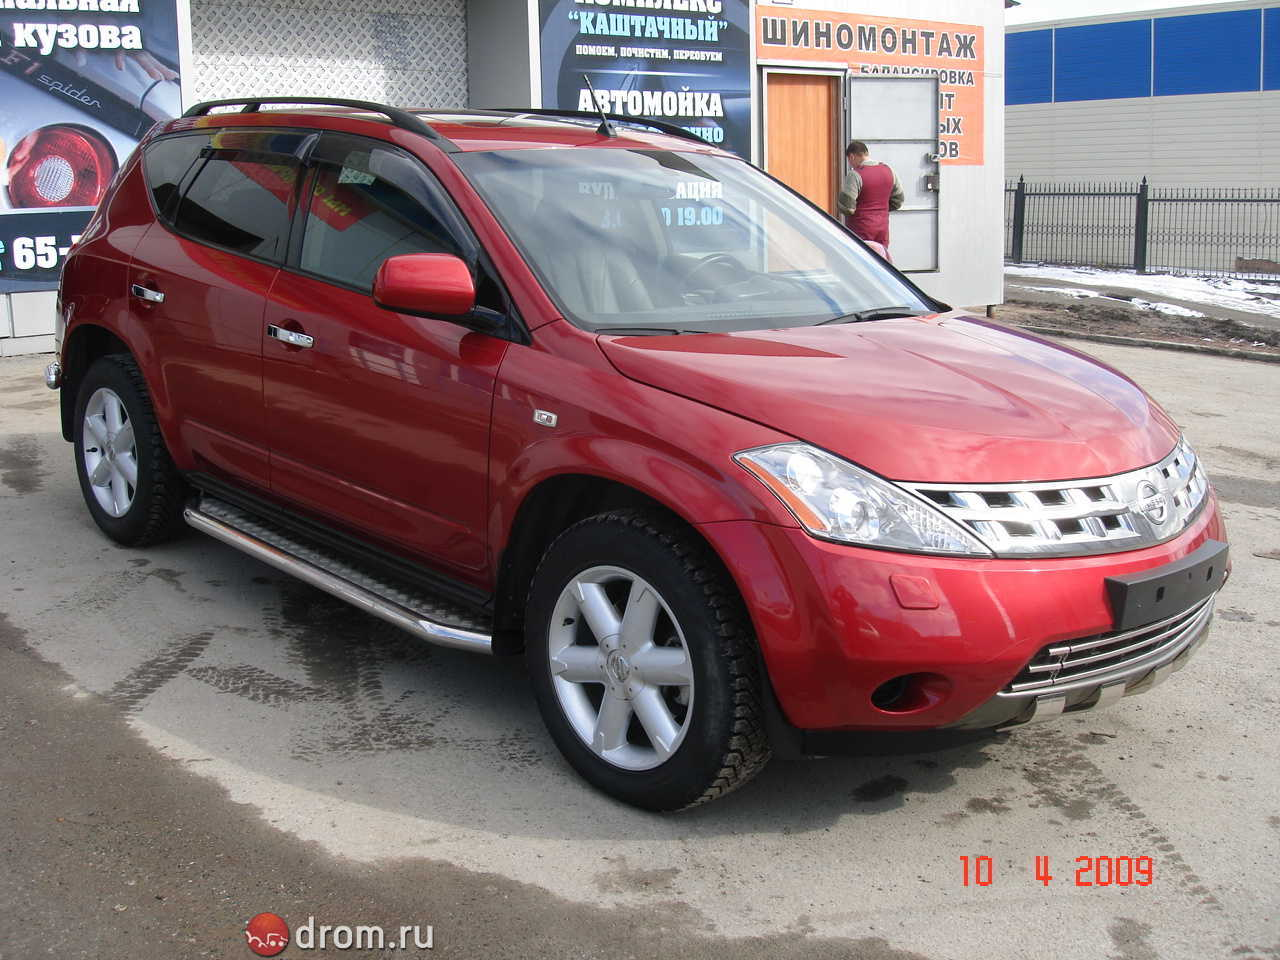 2008 Nissan Murano Pictures, 3.5l., Gasoline, Automatic For Sale